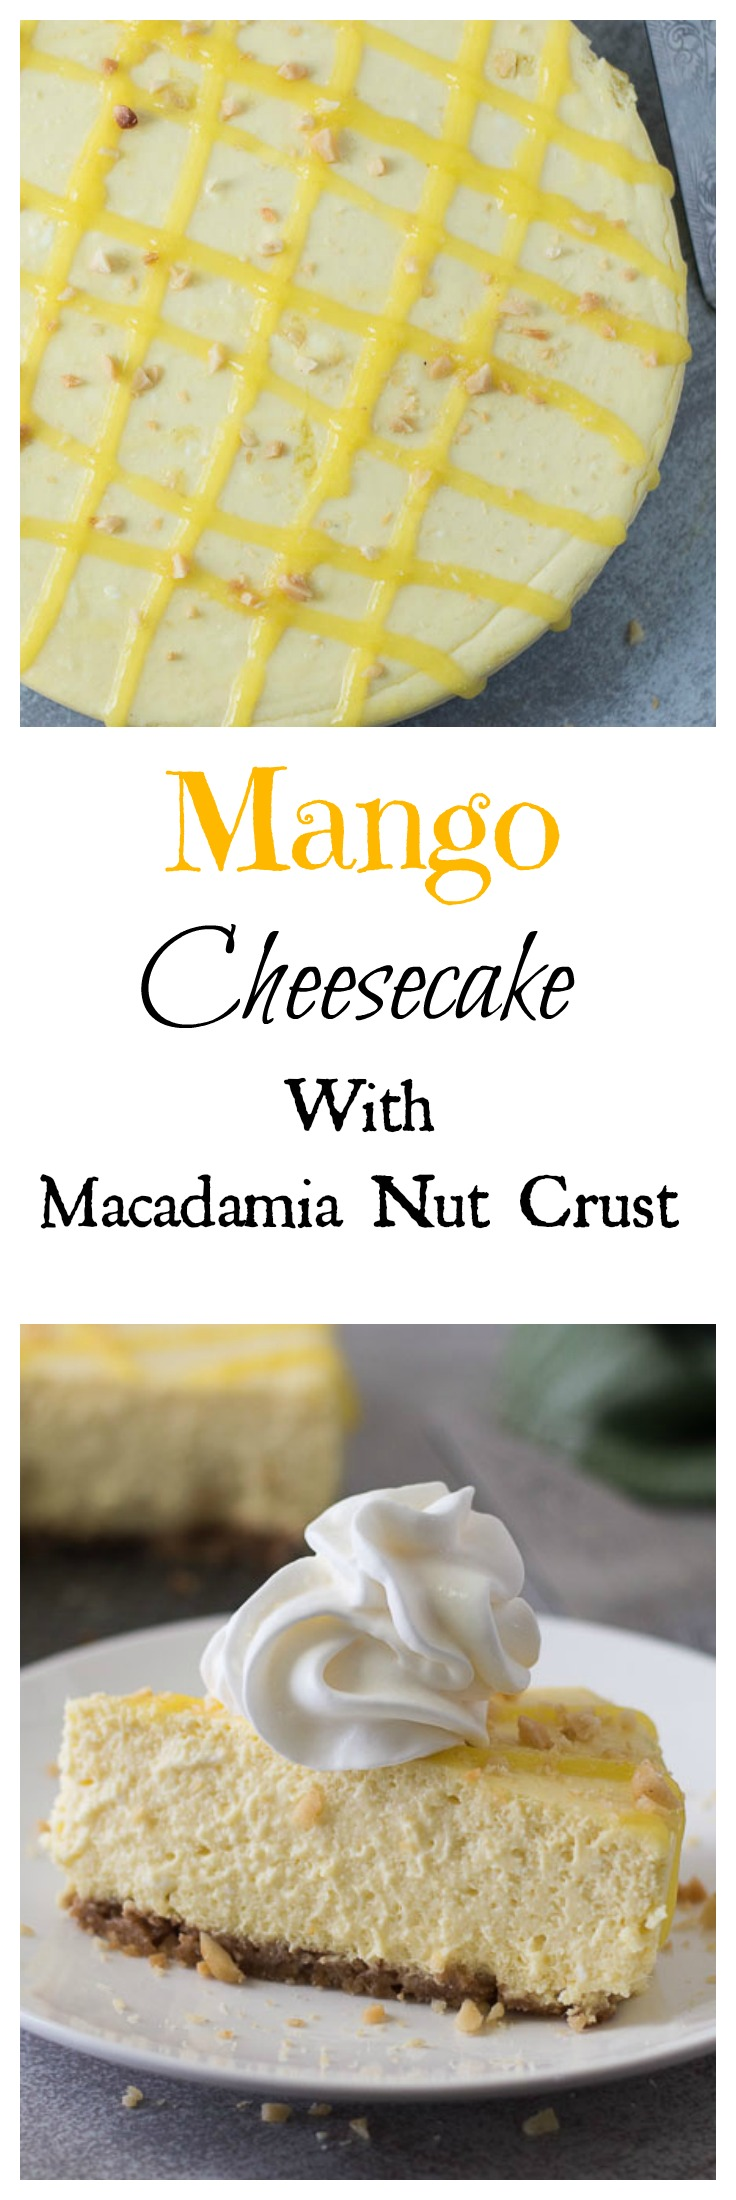 Mango Cheesecake with Macadamia Nut Crust